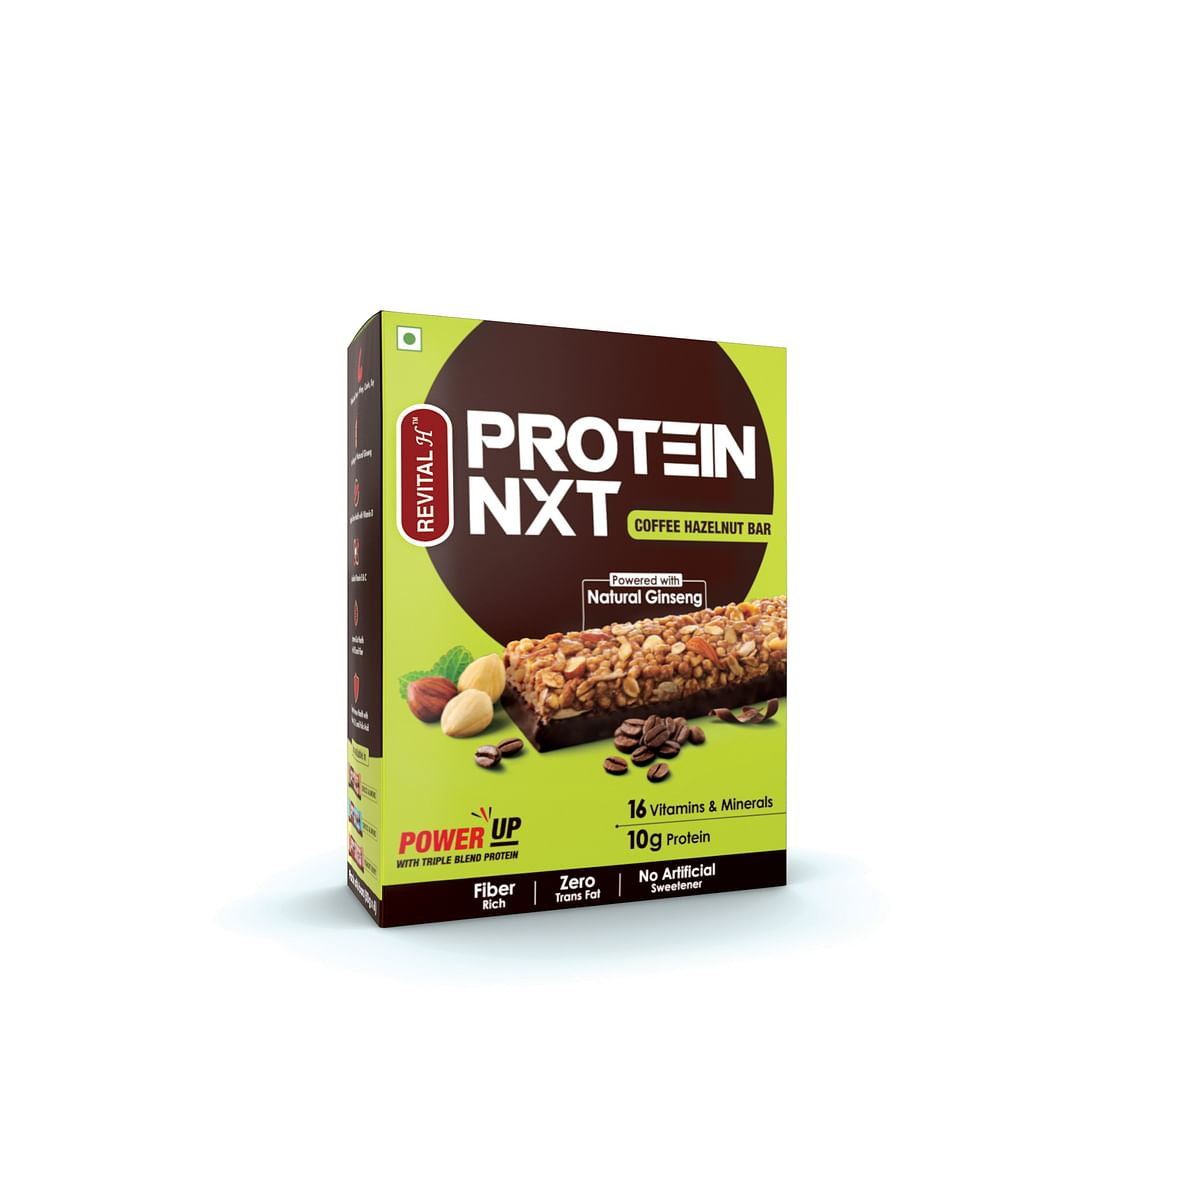 Revital nutrition bars can replace junk food, says Tarundeep Rana on the brand's healthy snacking venture